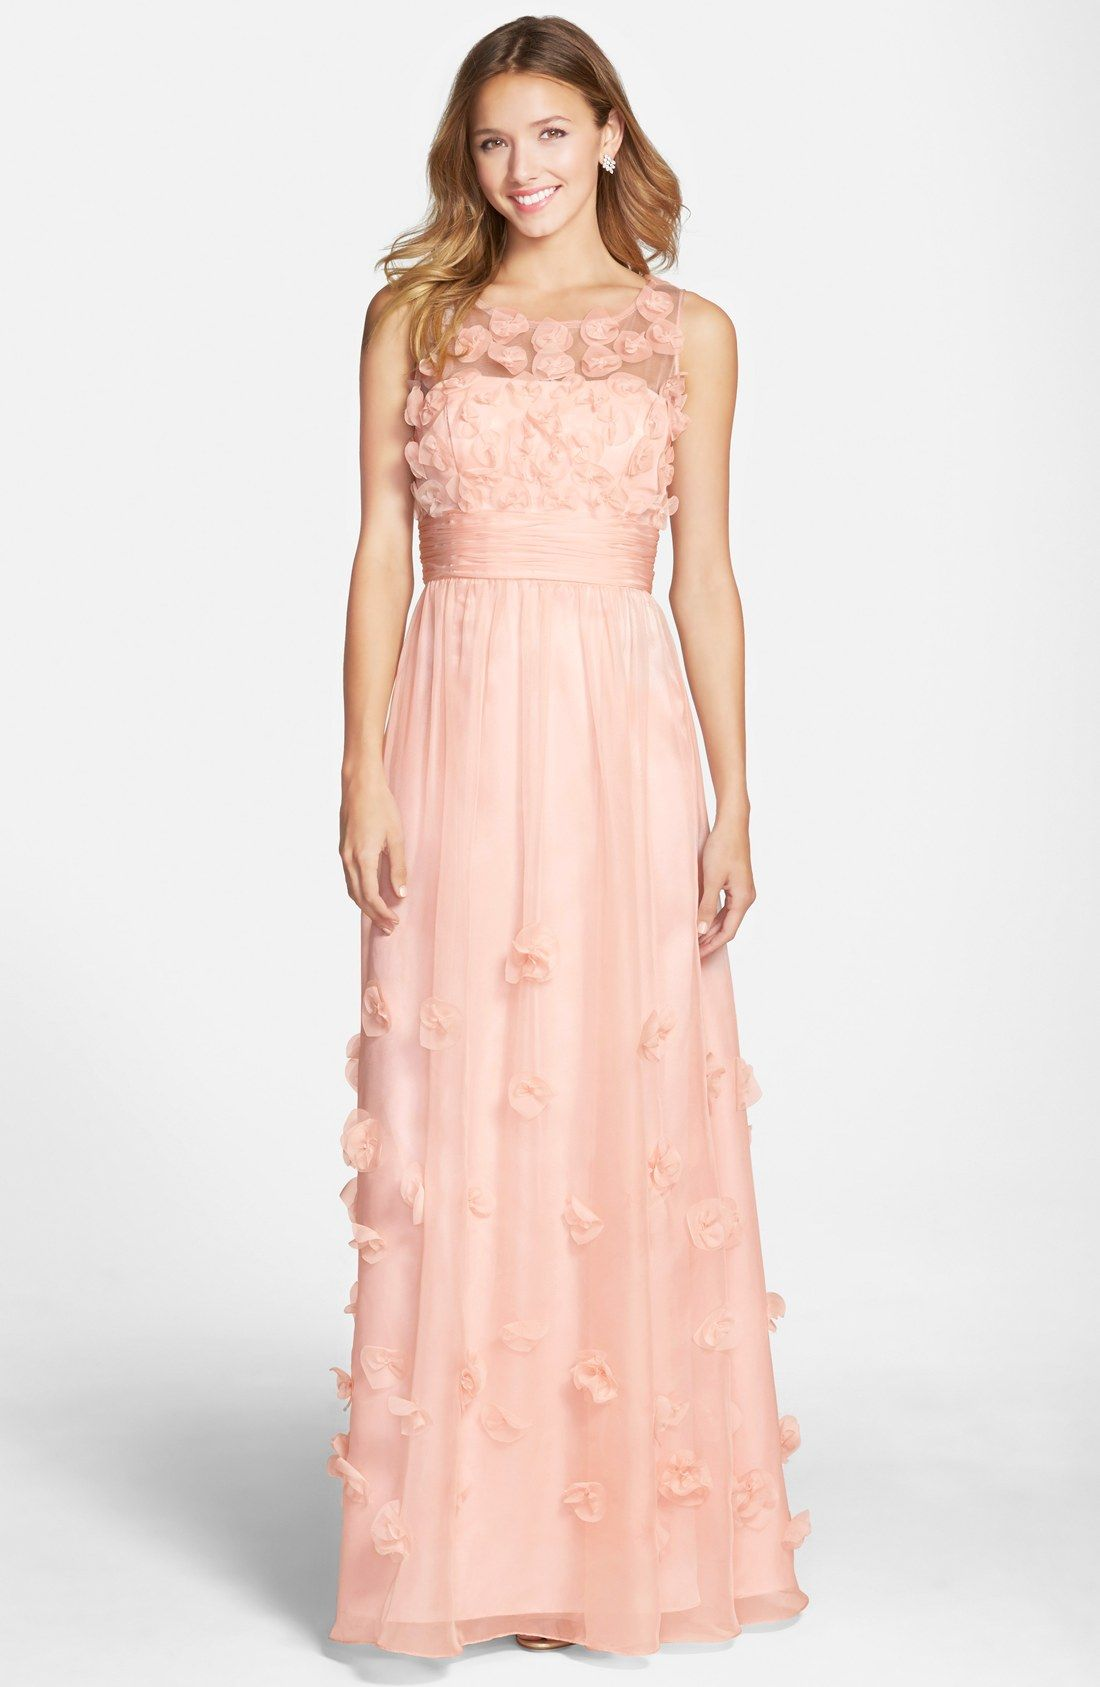 This floral applique chiffon gown from Nordstrom is so pretty and ...